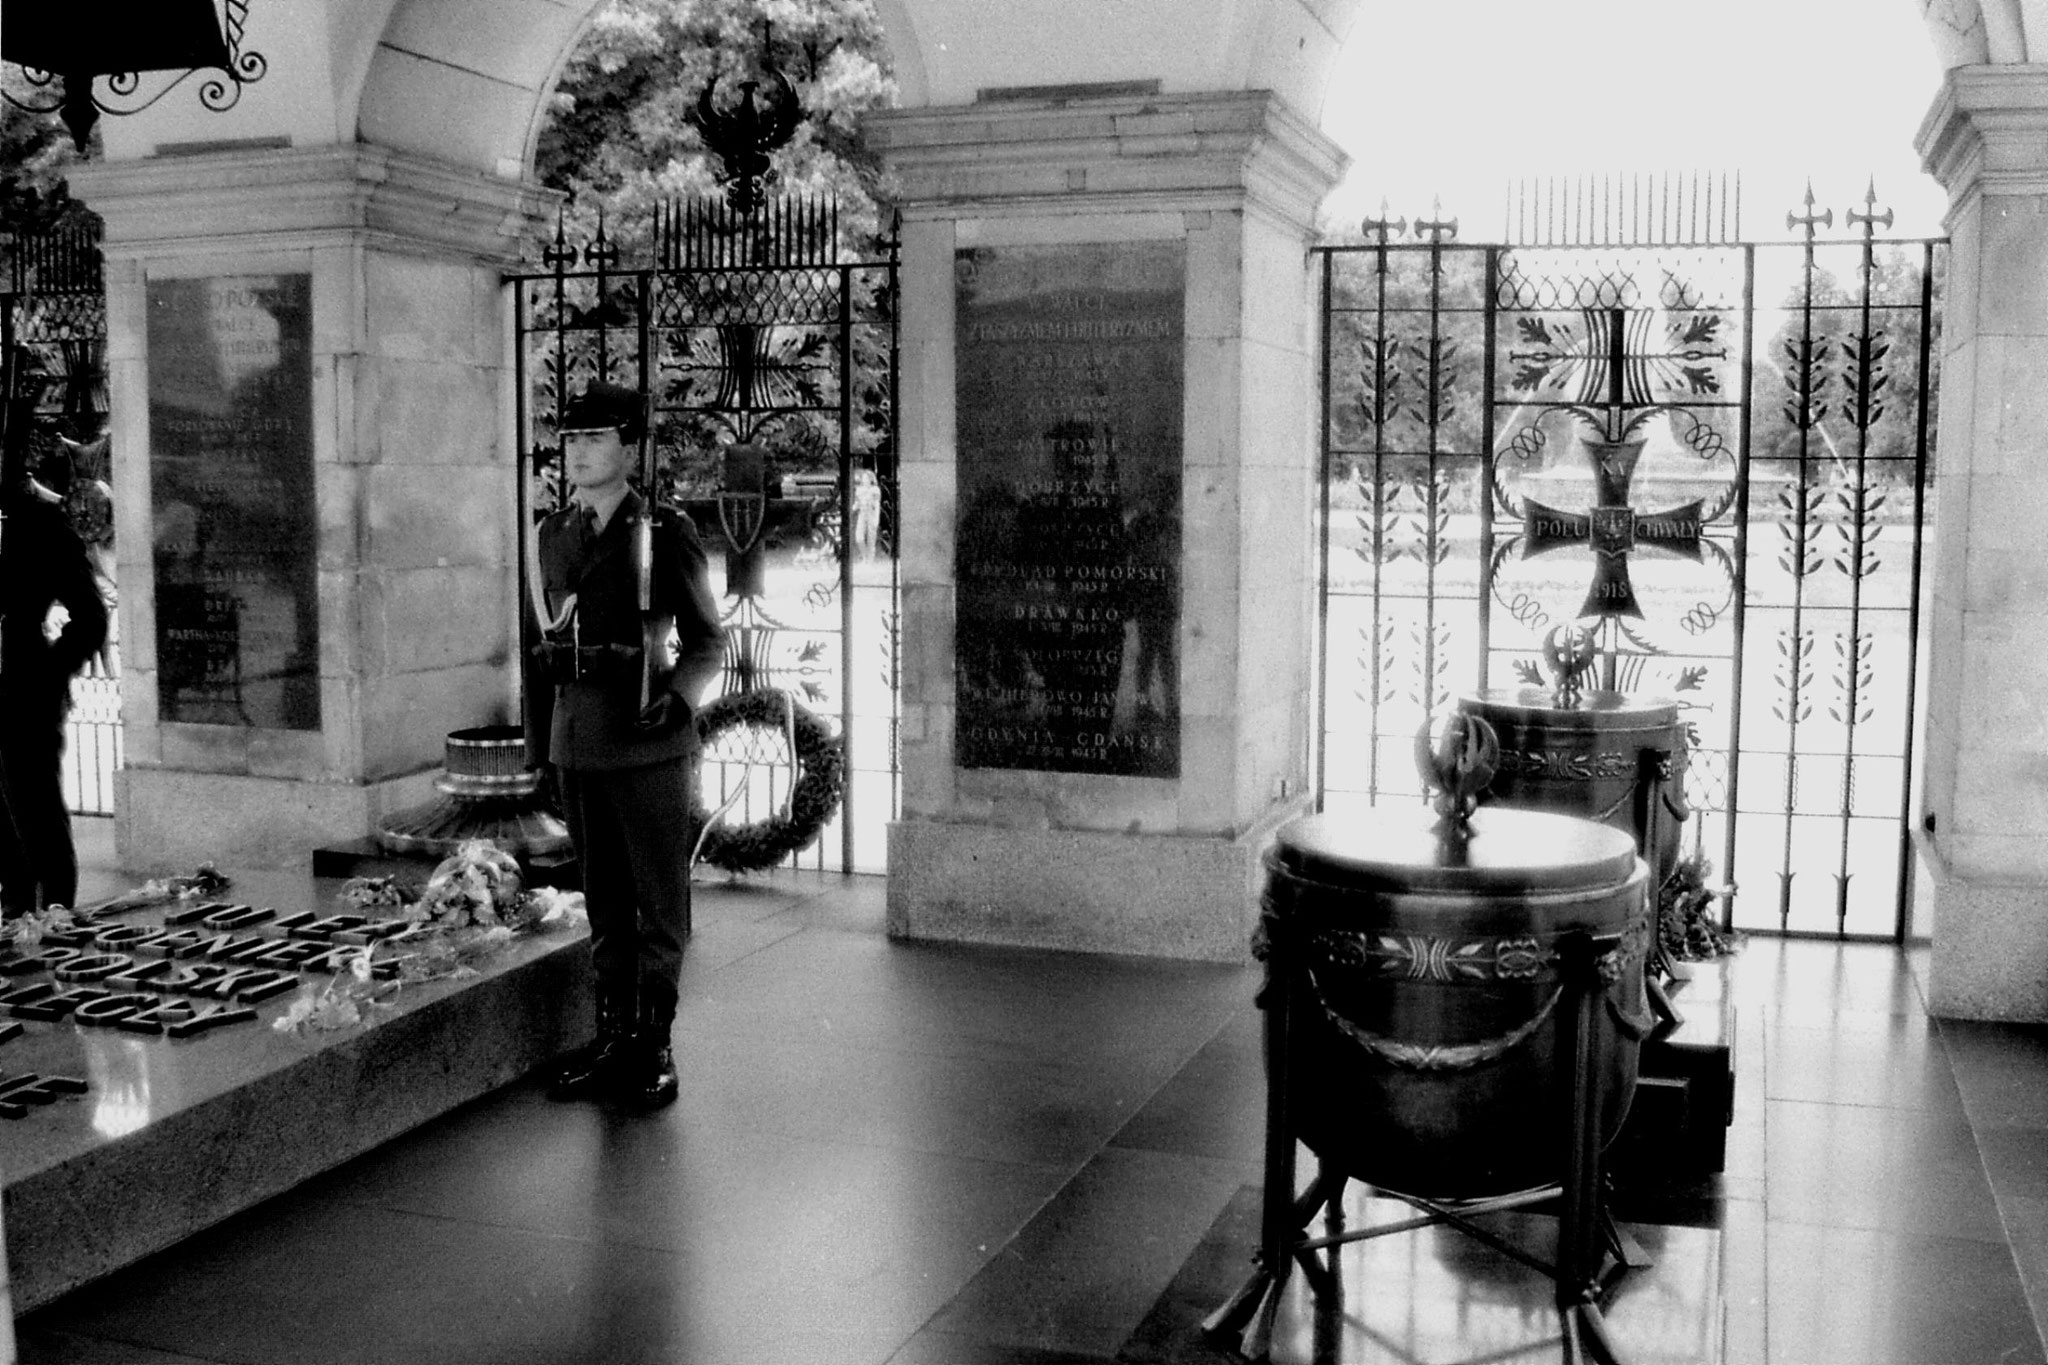 22/8/1988: 14: Tomb of the Unknown Soldier